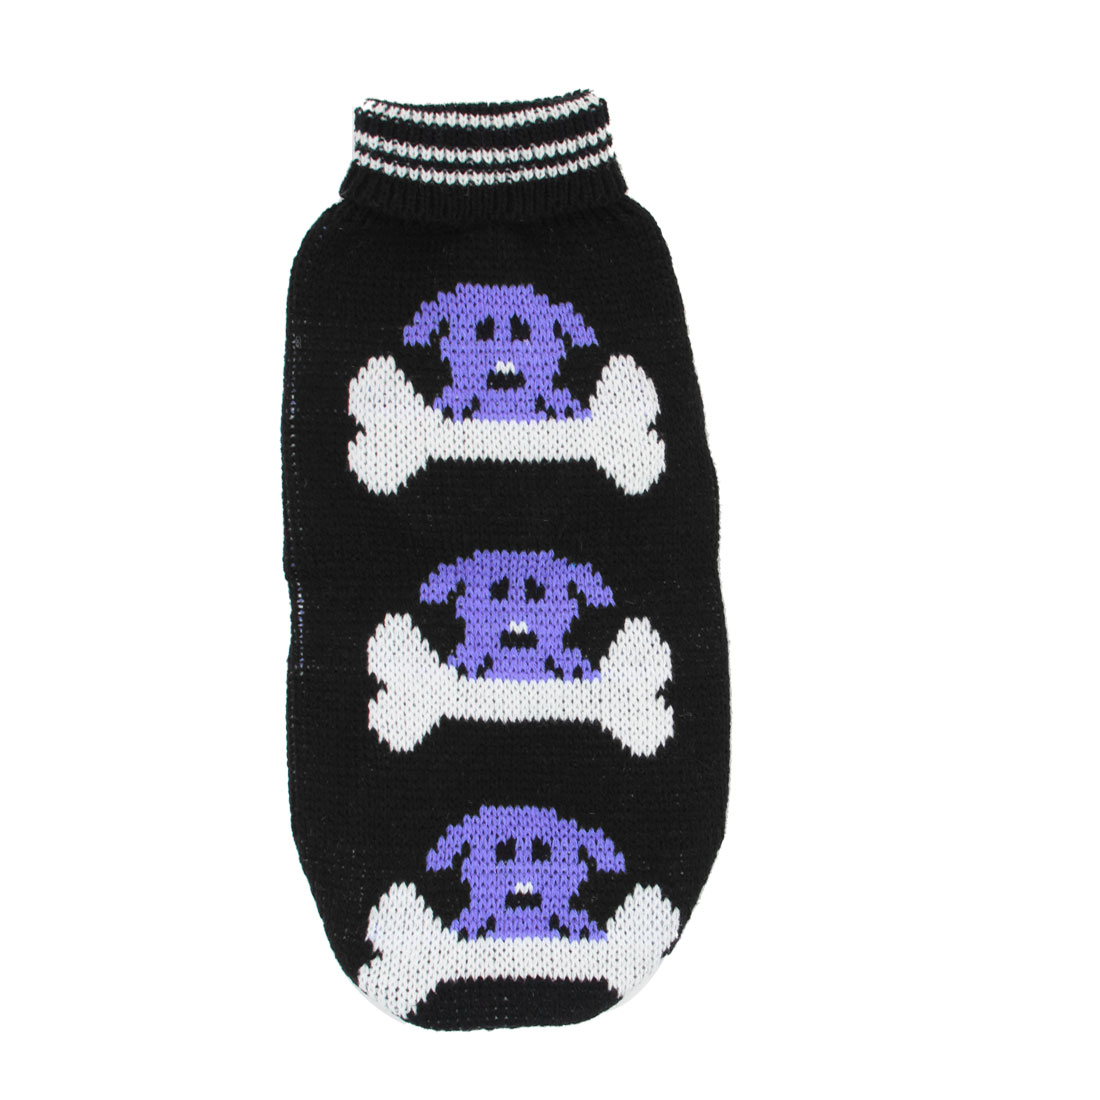 Pet Dog Puppy Ribbed Cuff Knitwear Turtleneck Apparel Sweater Black White Blue Size S